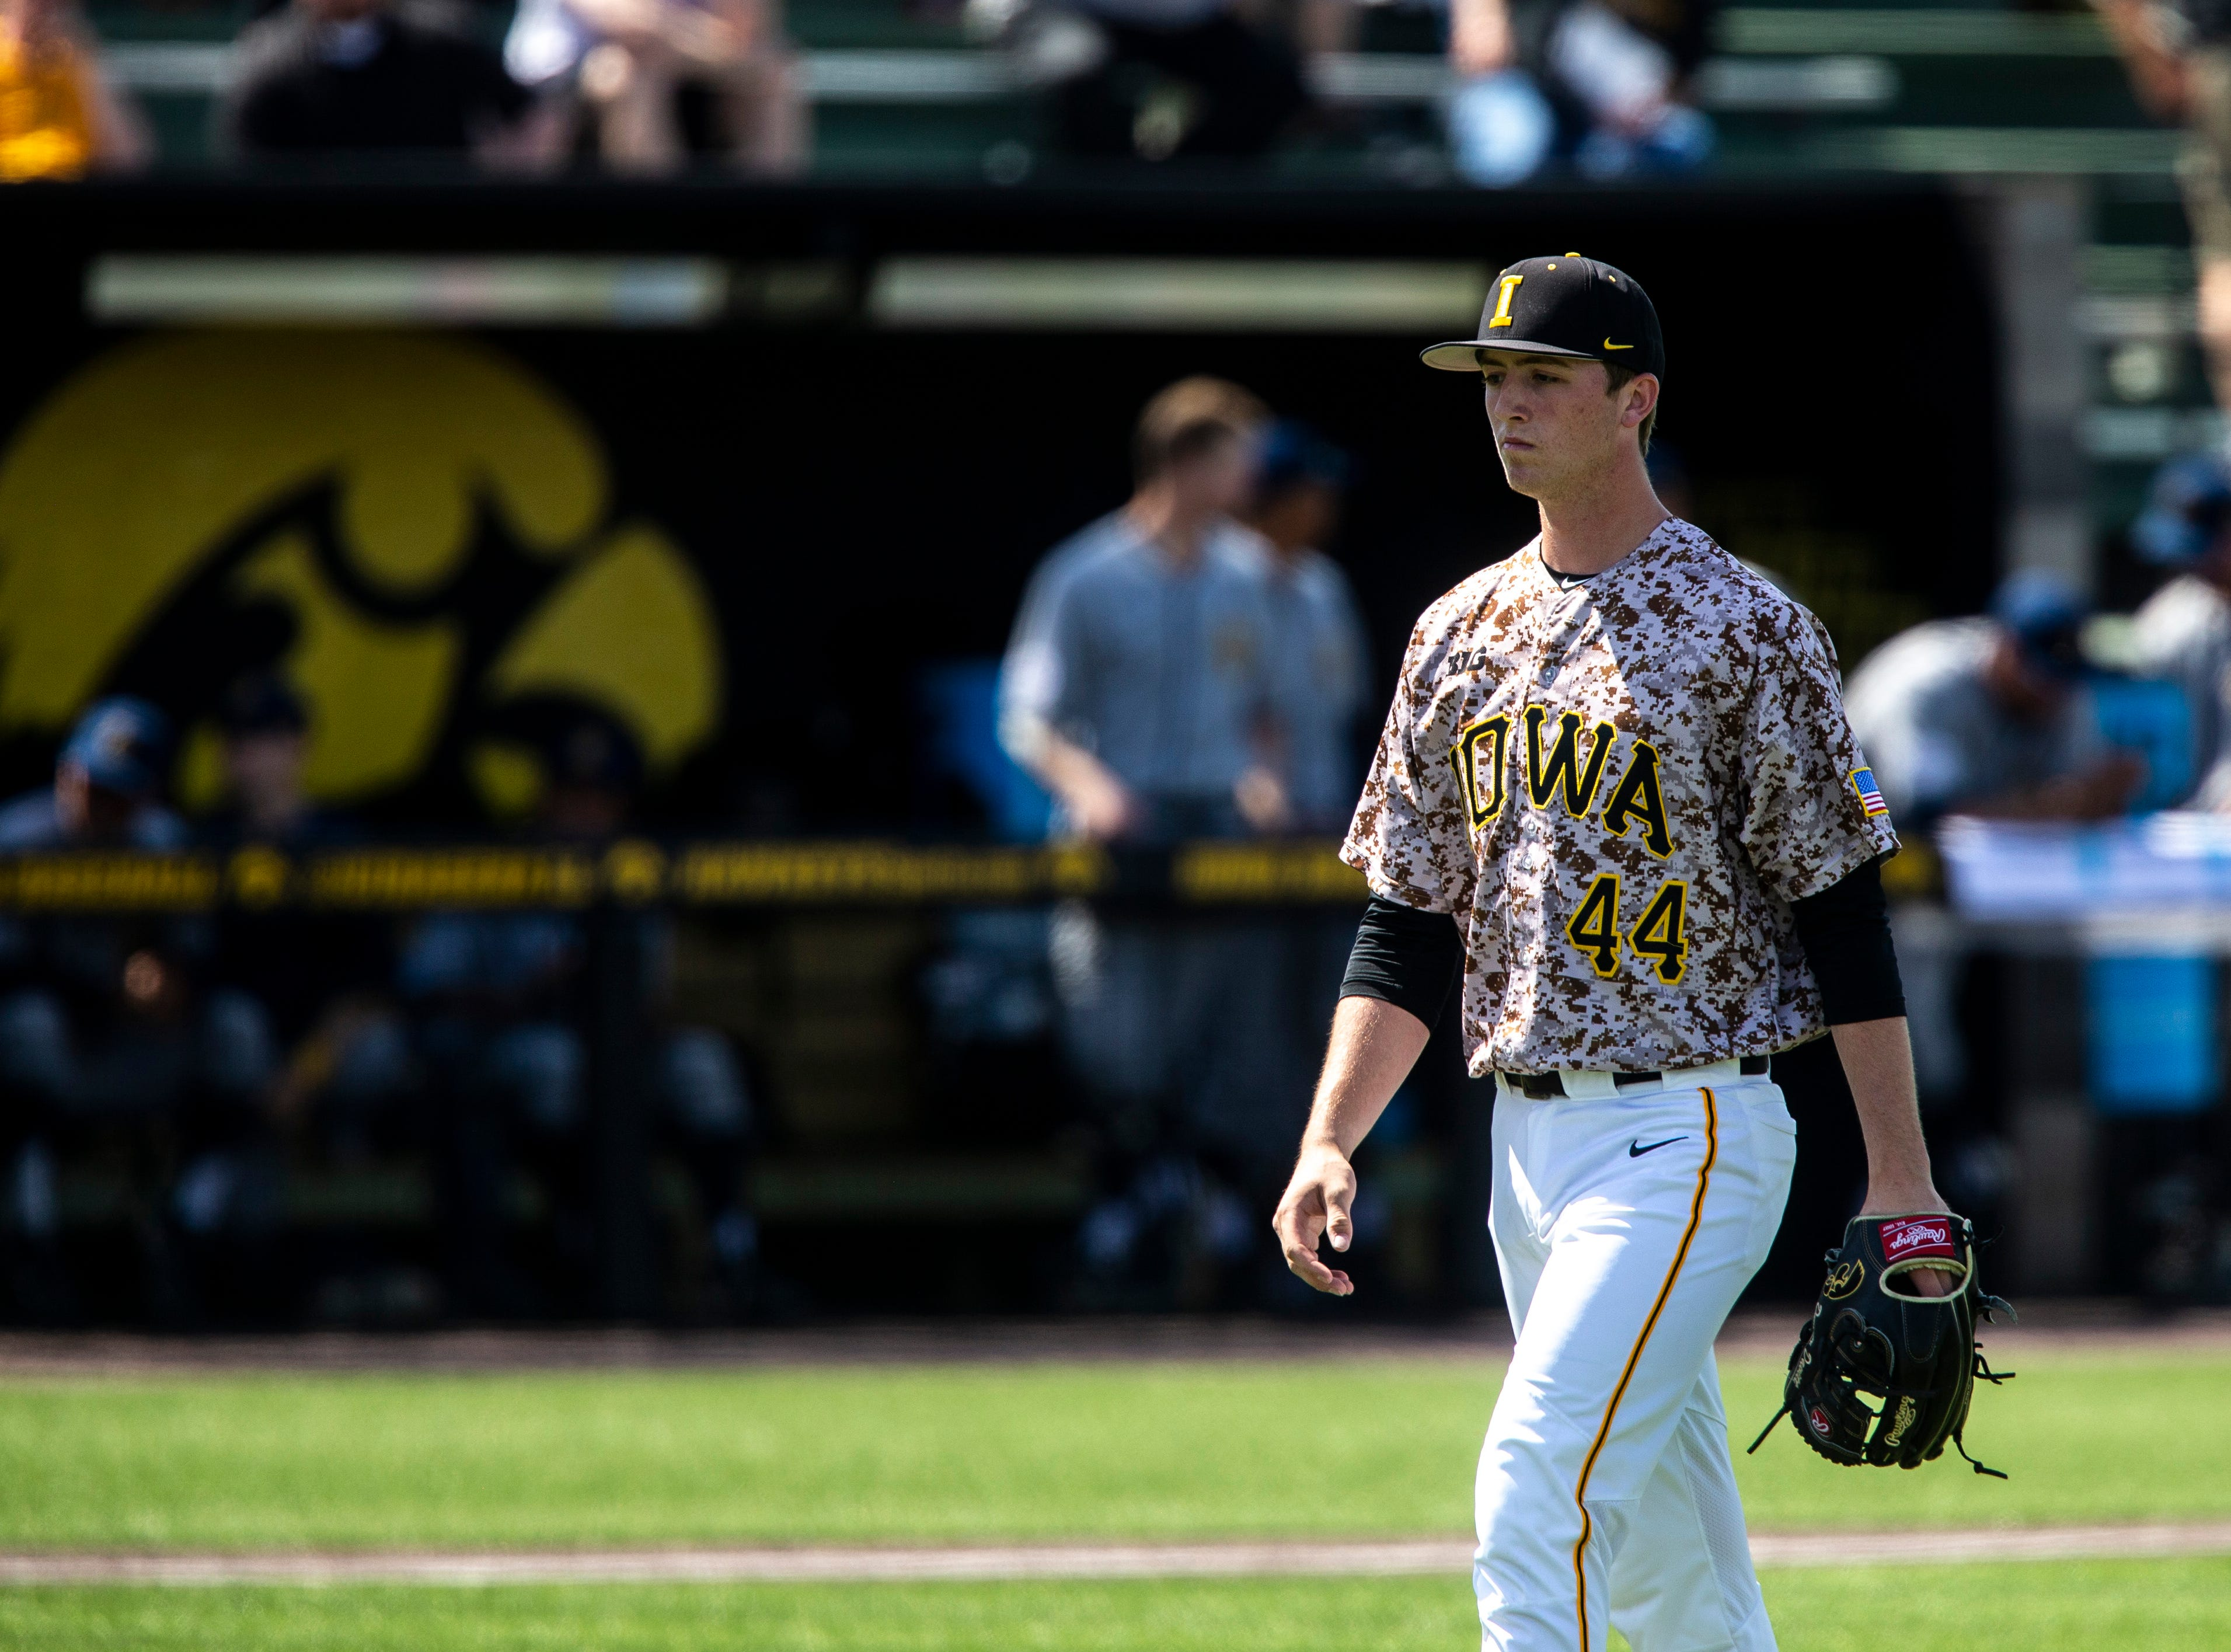 Iowa pitcher Duncan Davitt (44) walks off the mound during a NCAA non conference baseball game, Sunday, May 5, 2019, at Duane Banks Field in Iowa City, Iowa.